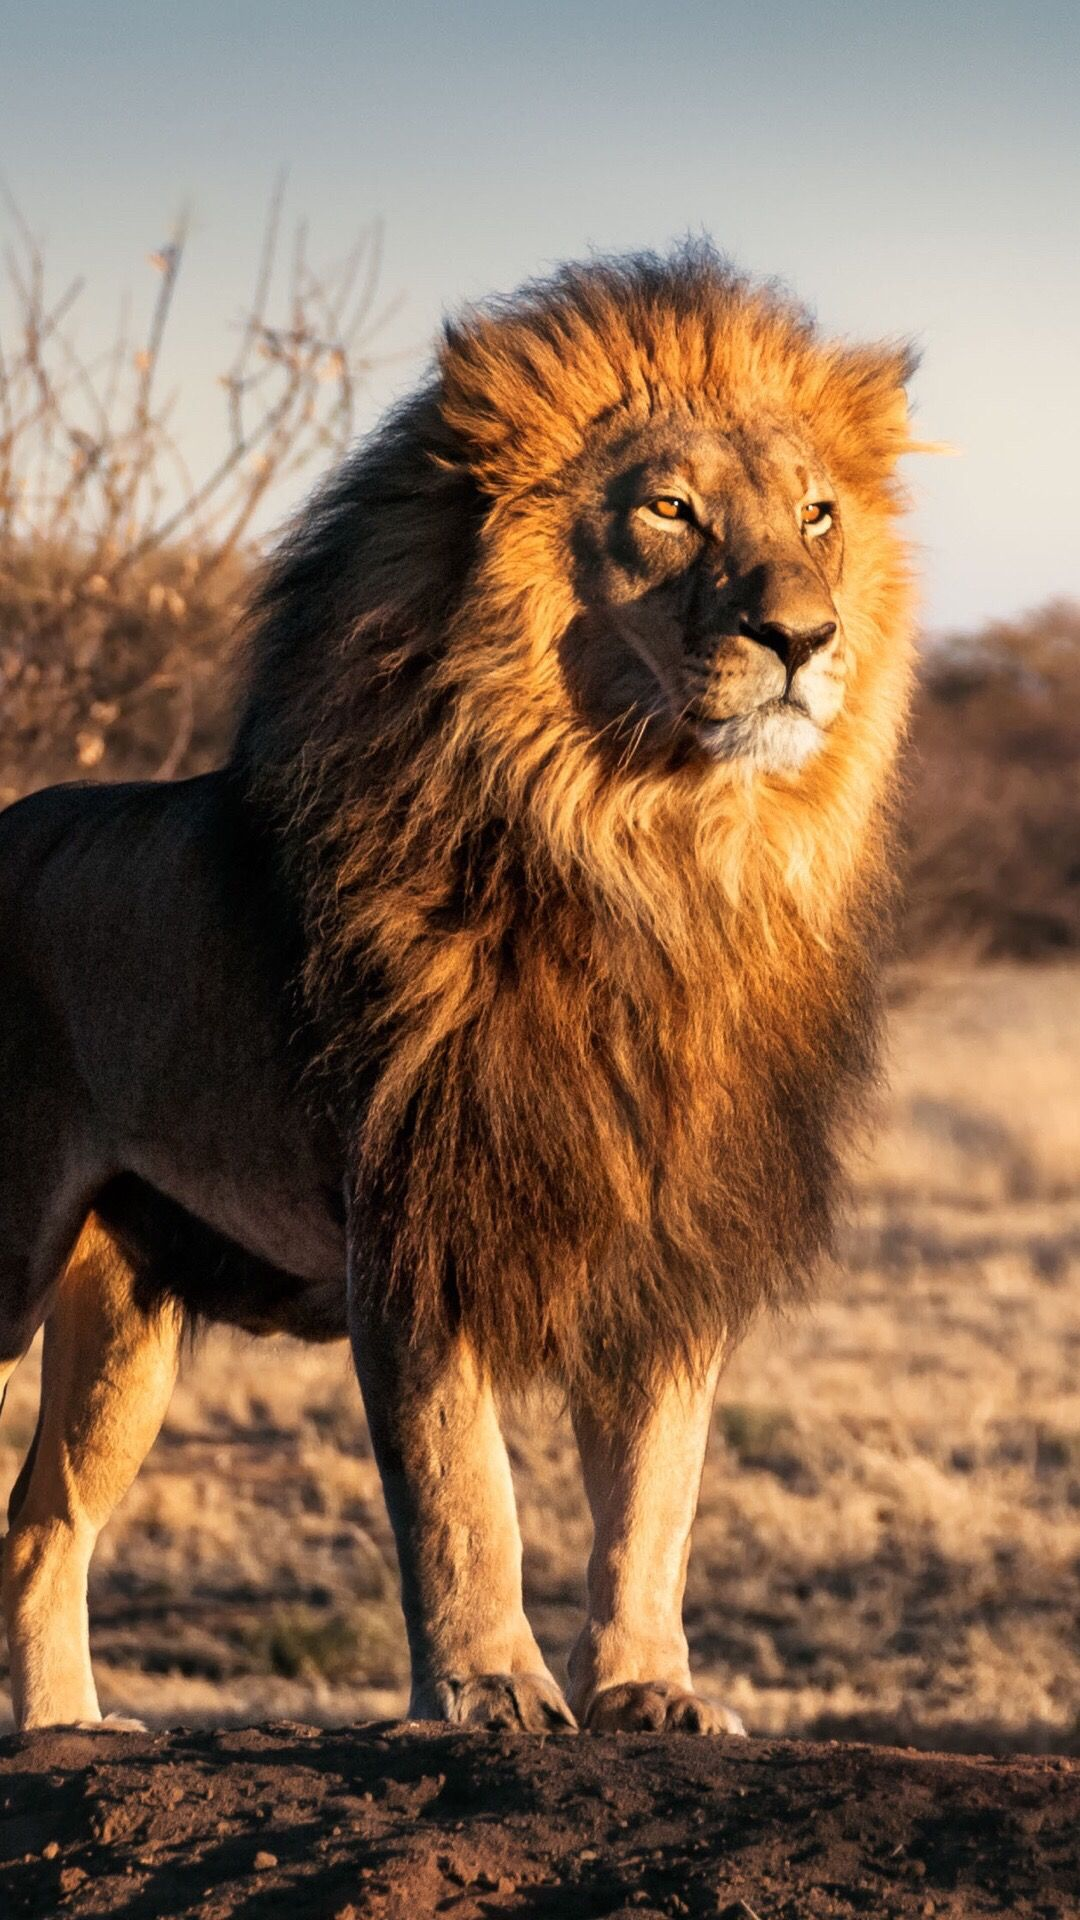 Overnight With the Lions by Jennifer Leigh Edwards Free pictures of lions roaring